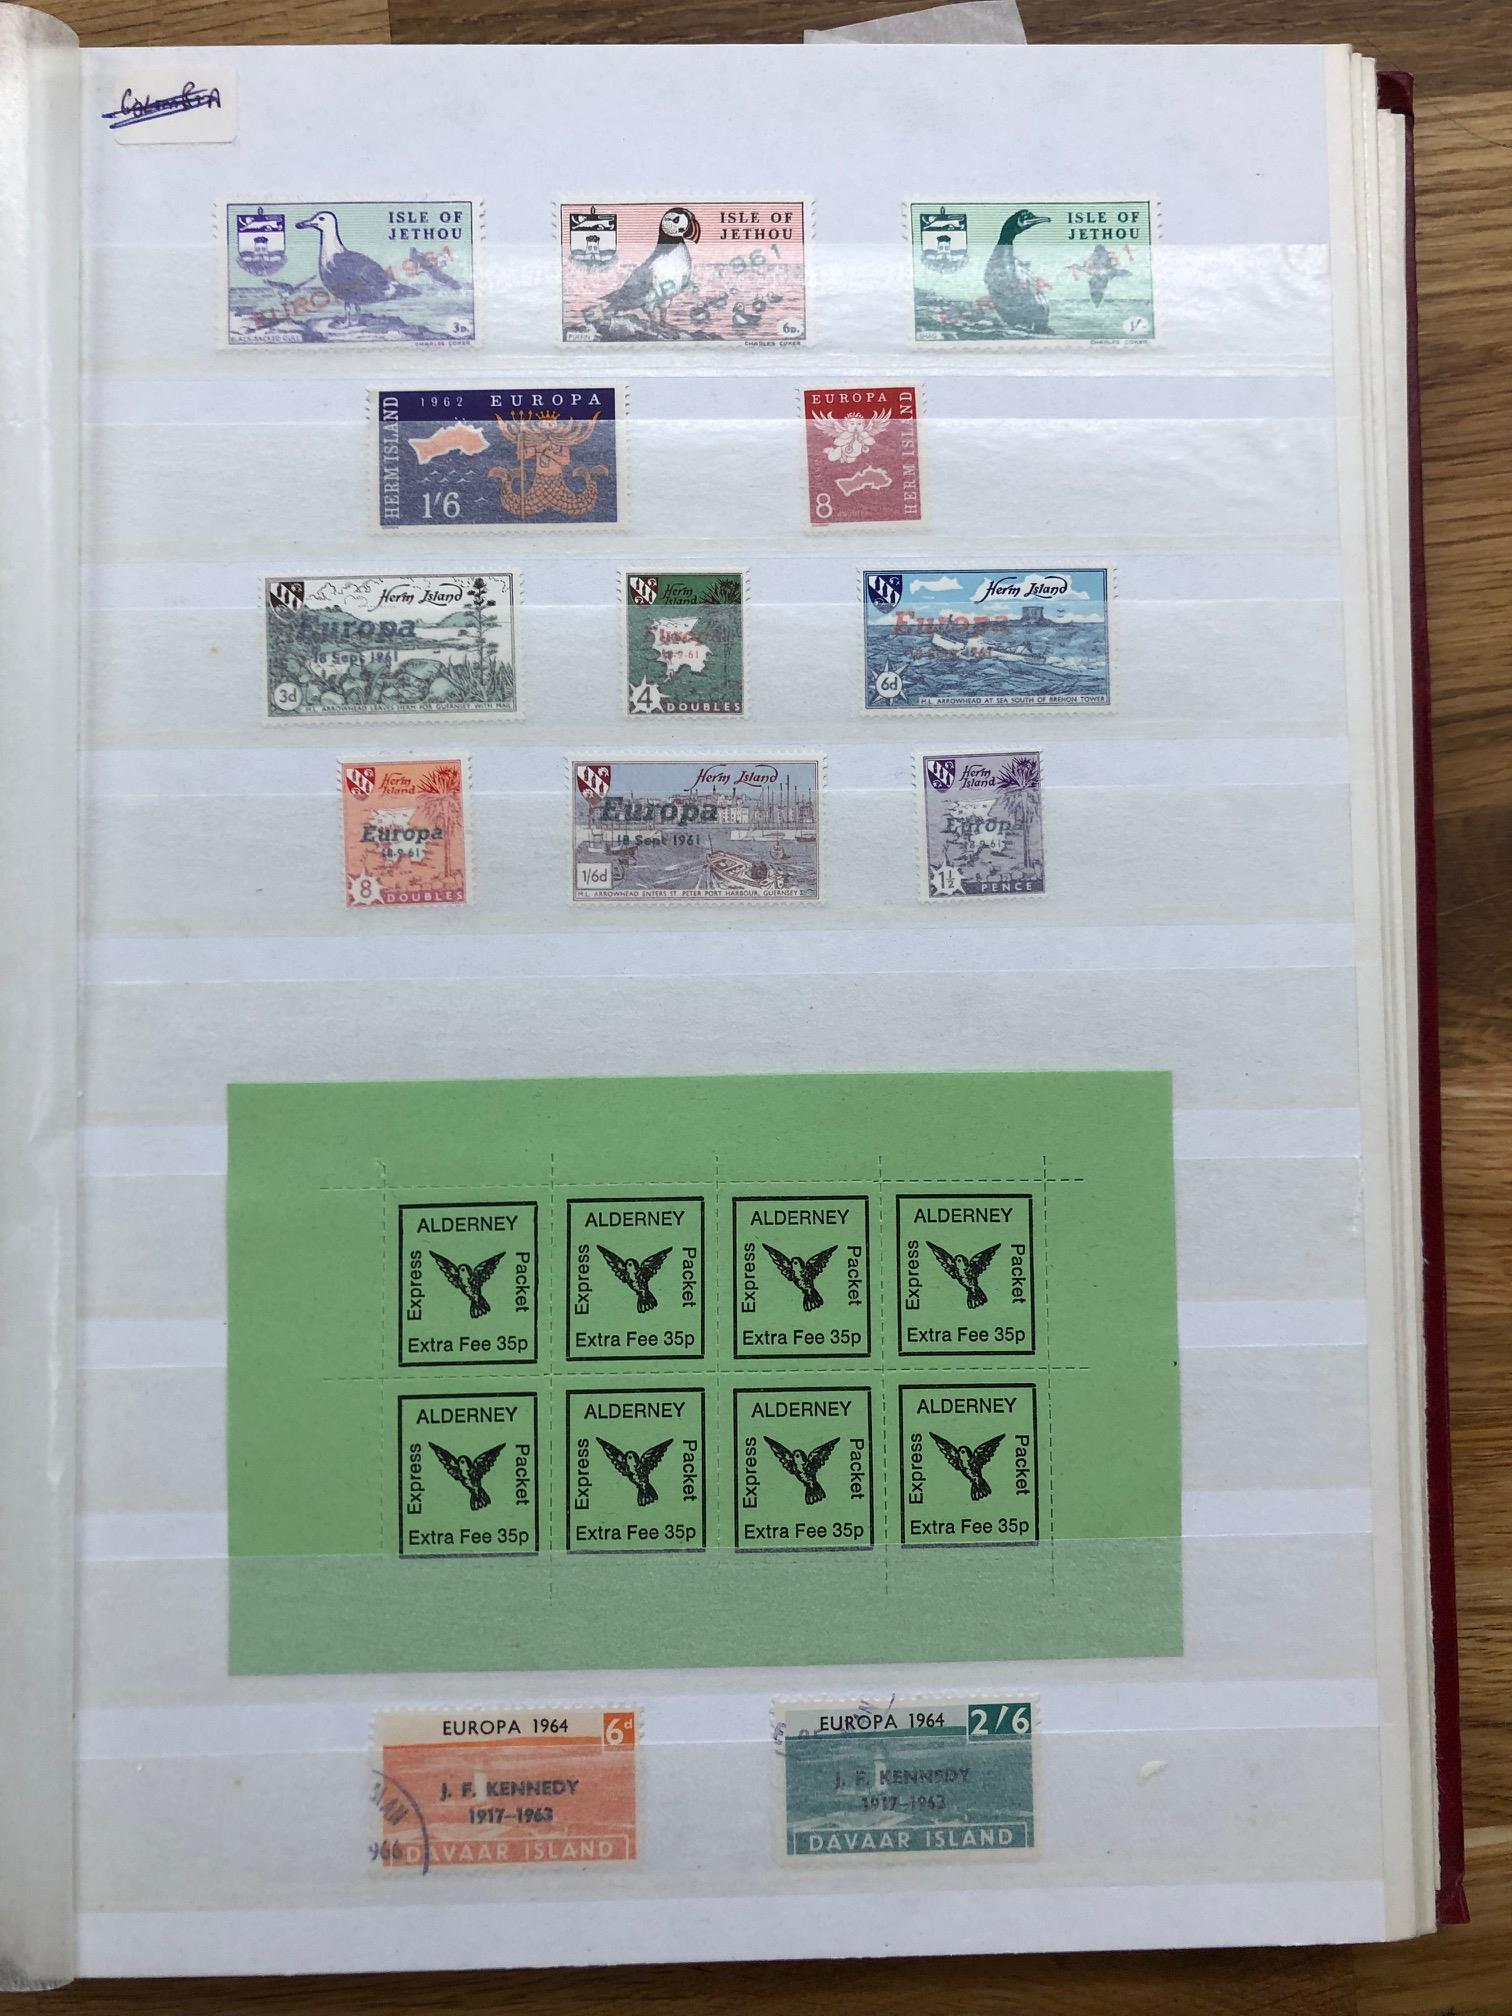 LOCALS stock book well filled with Alderney, Herm, Sark, Lundy etc. Stamps, covers, sheets, trials